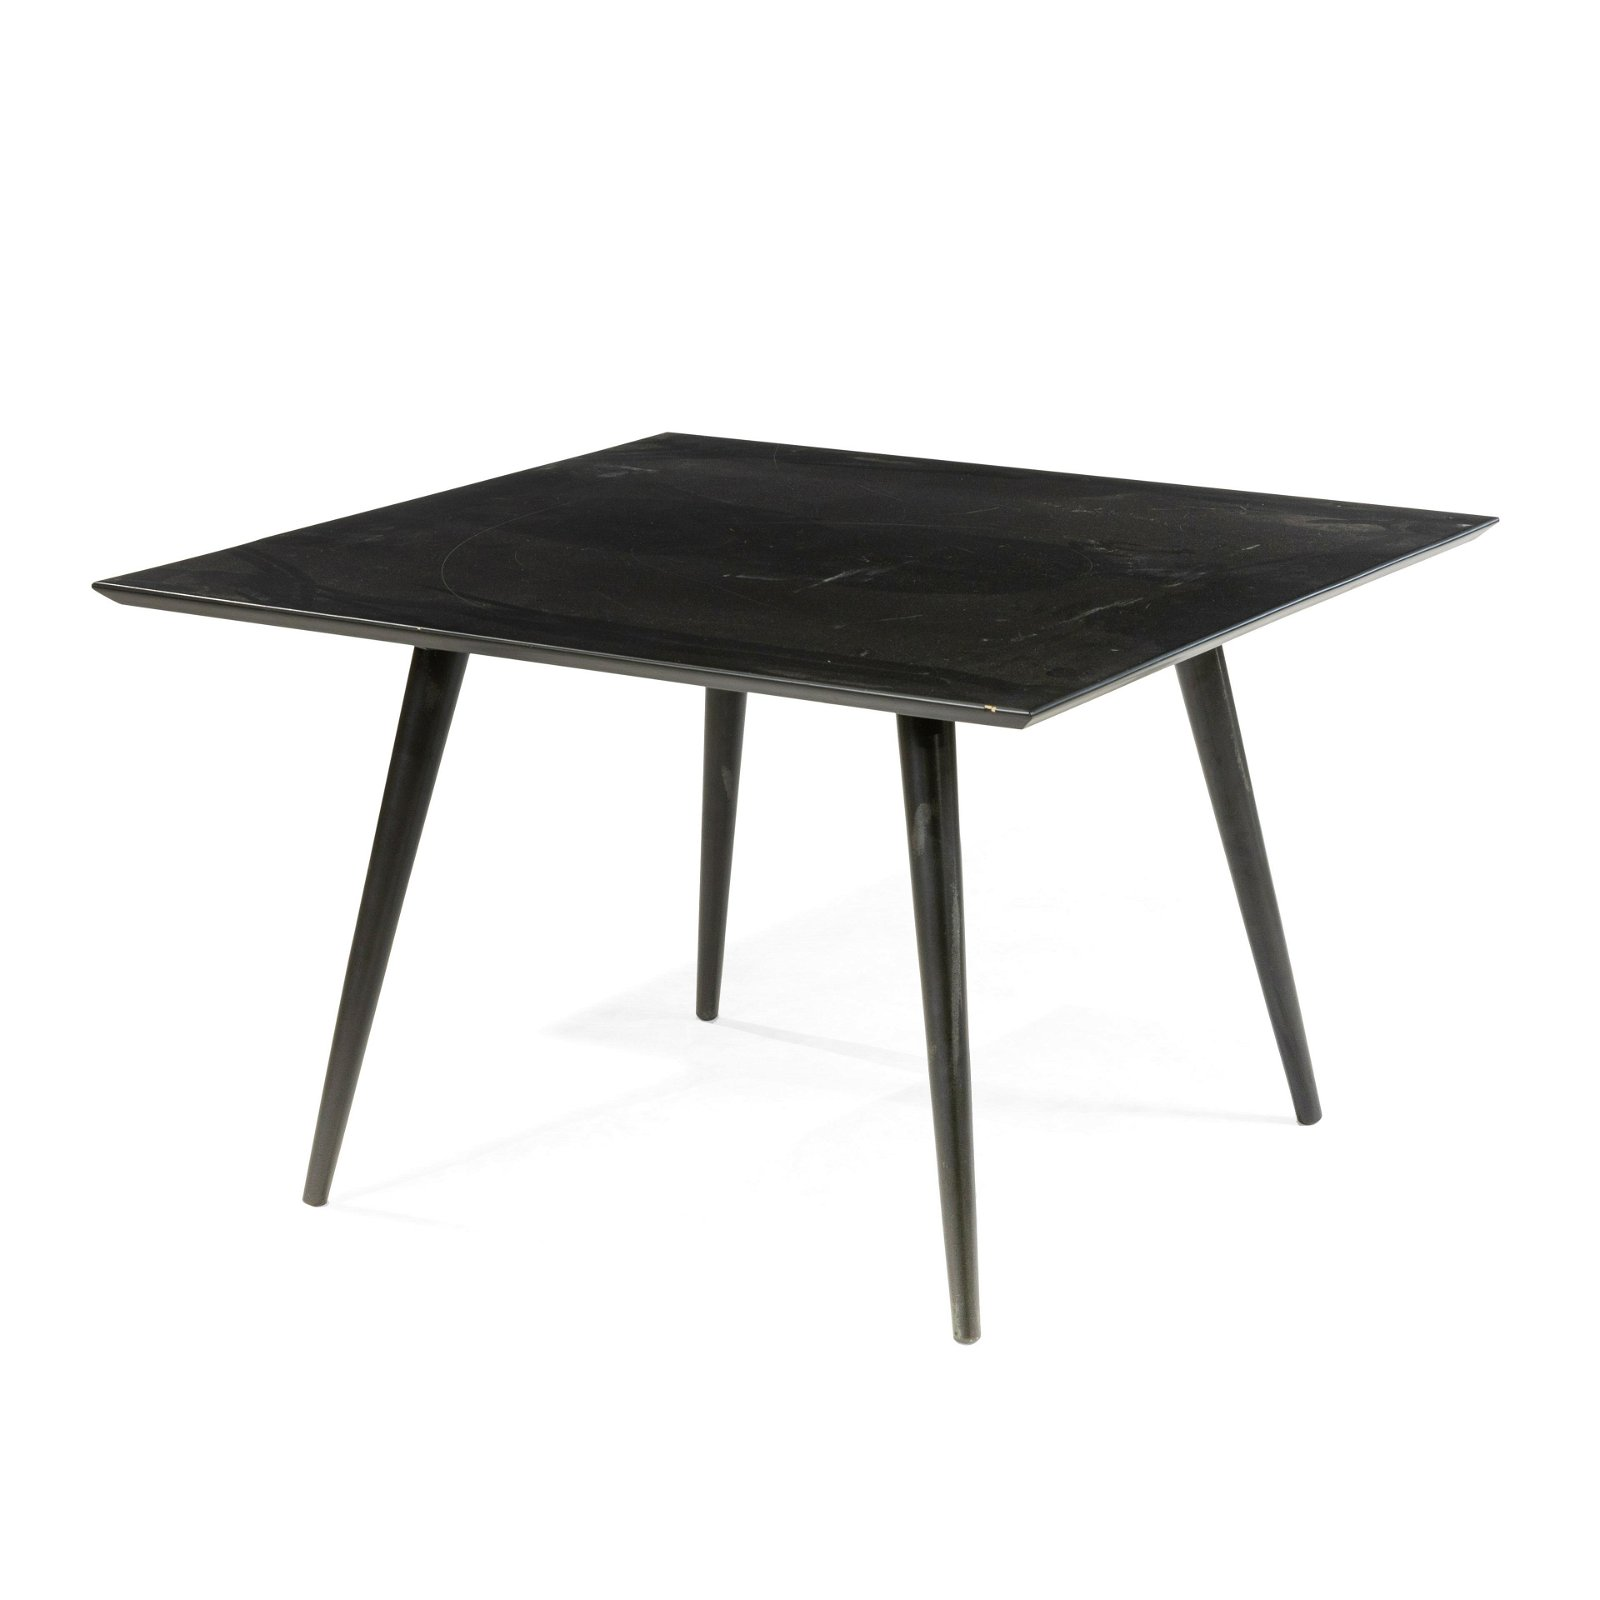 Paul McCobb - Planner Group - Coffee Table